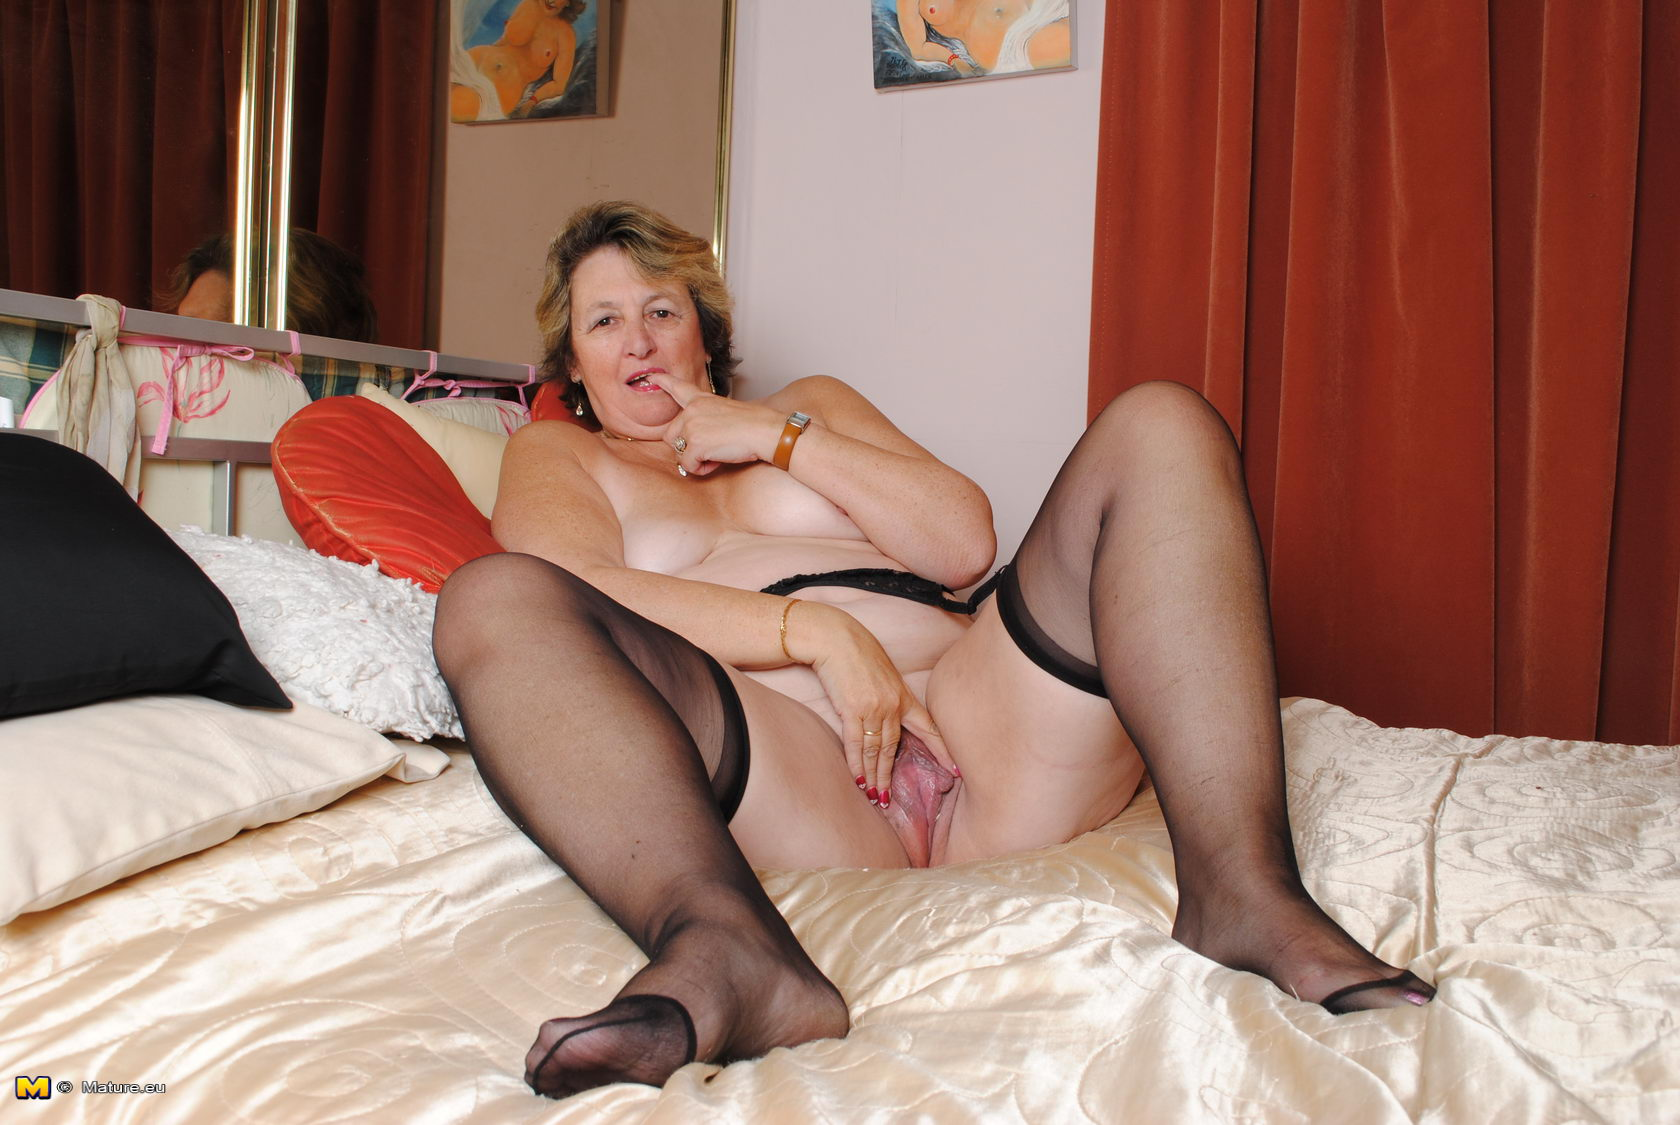 big mama playing with her wet pussy - grannypornpics